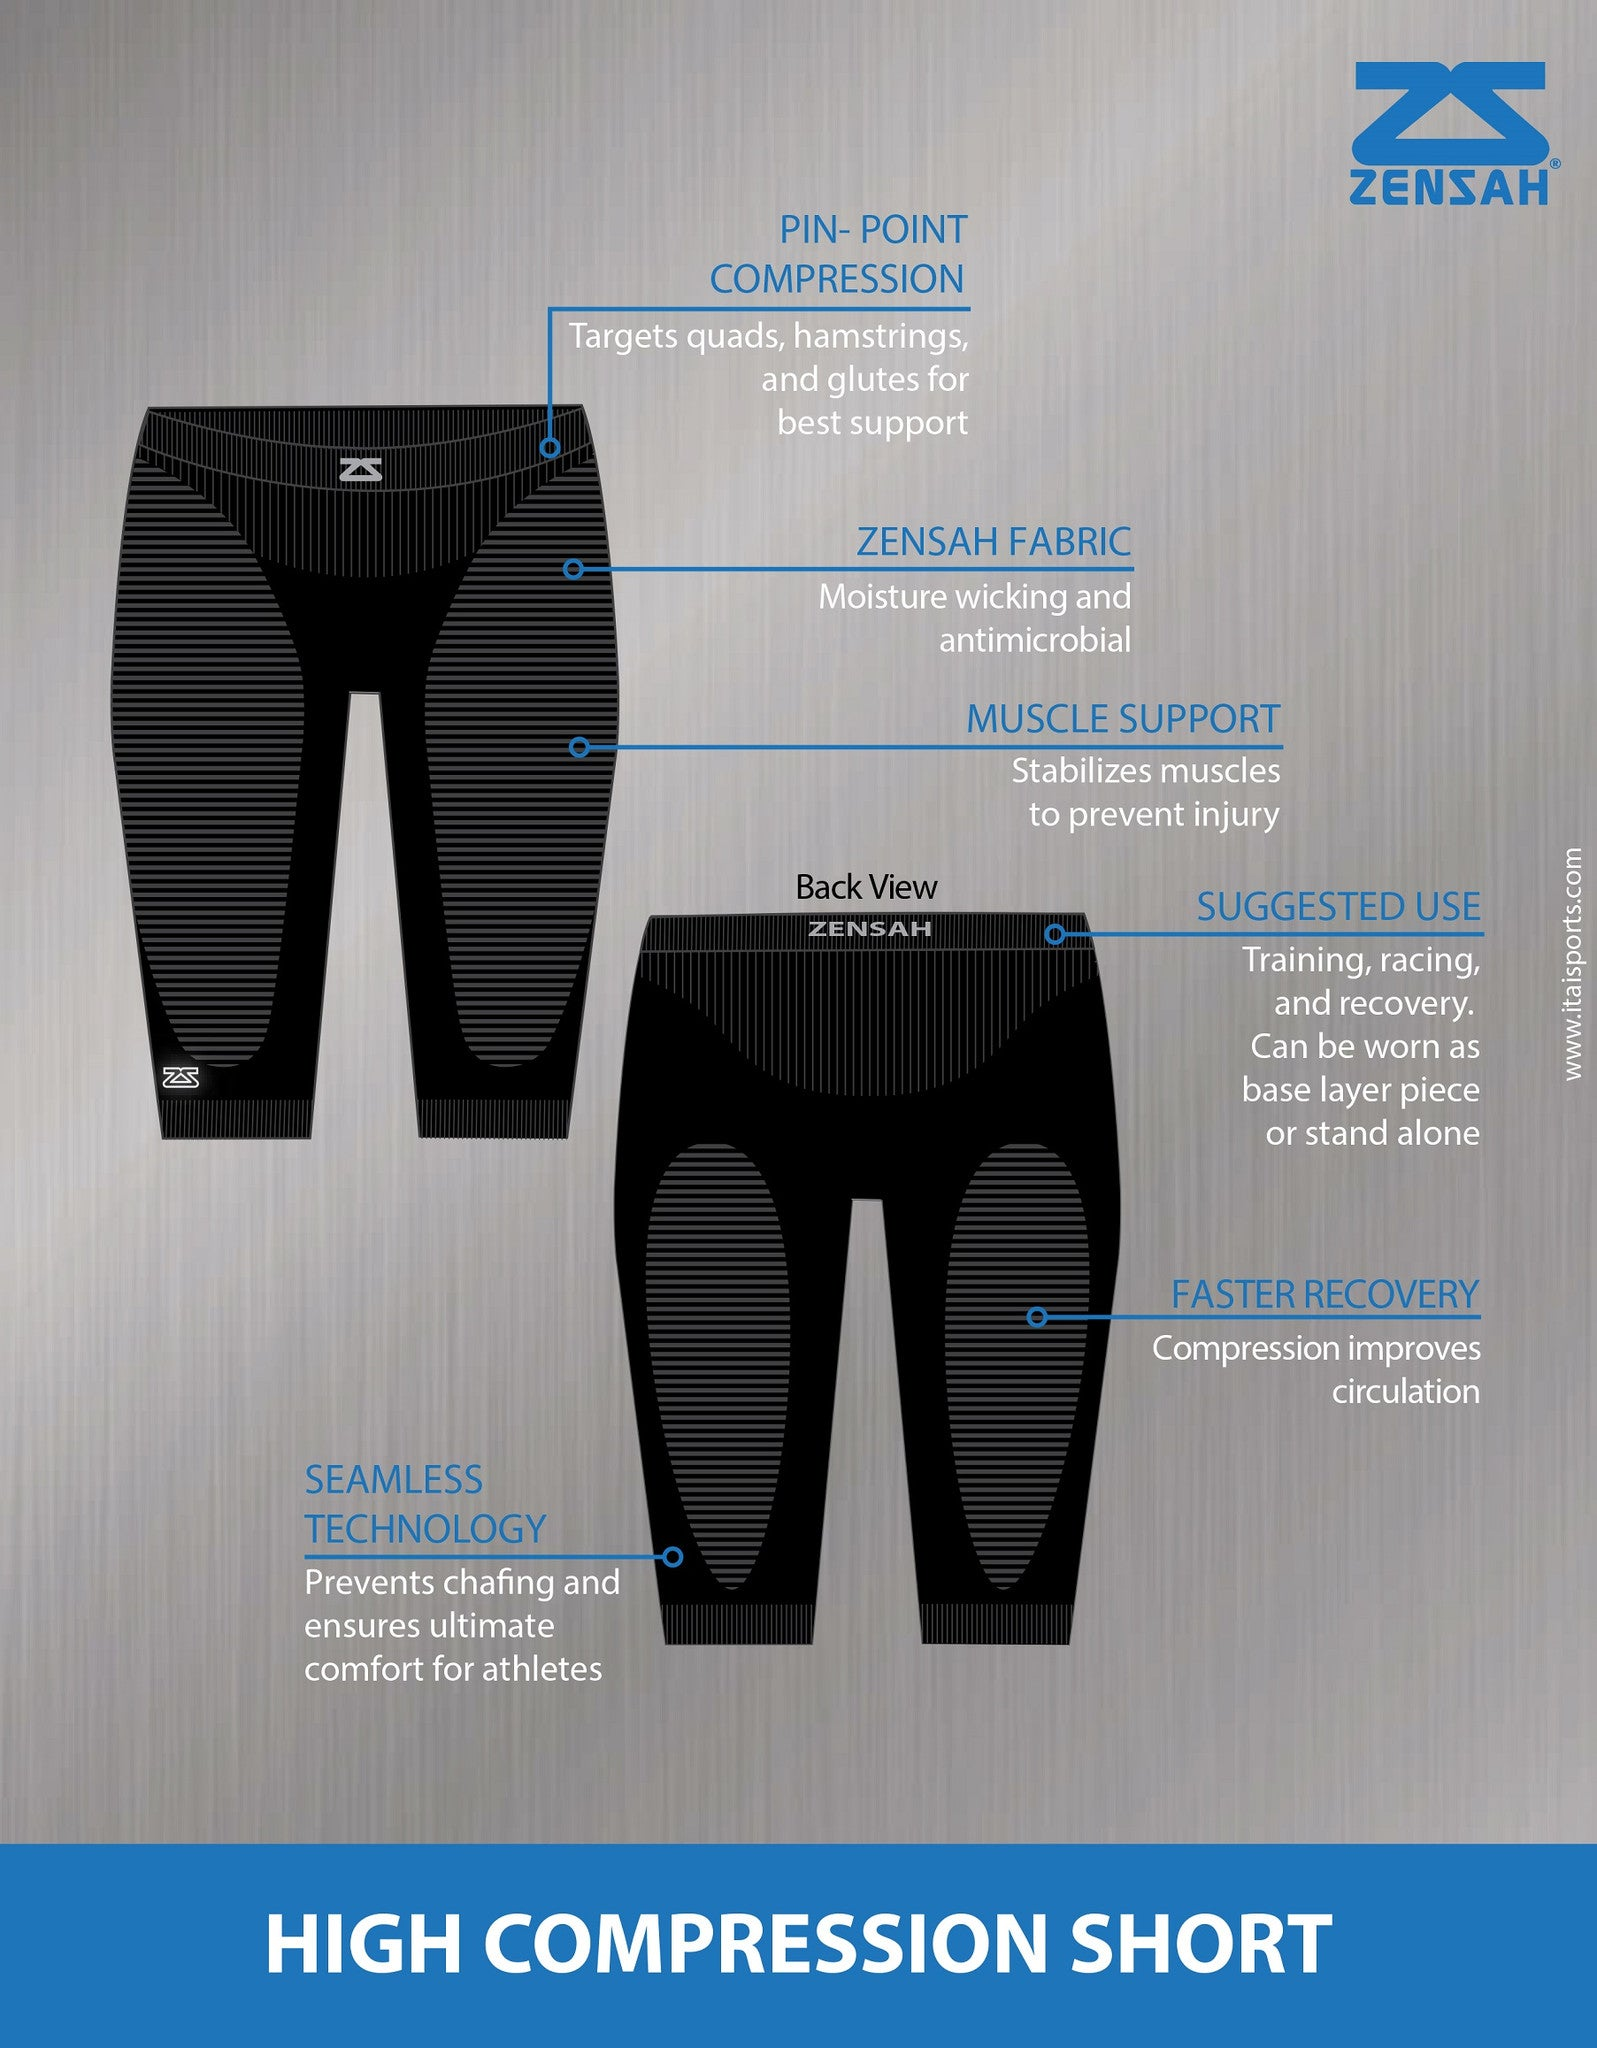 ZENSAH COMPRESSION SHORTS